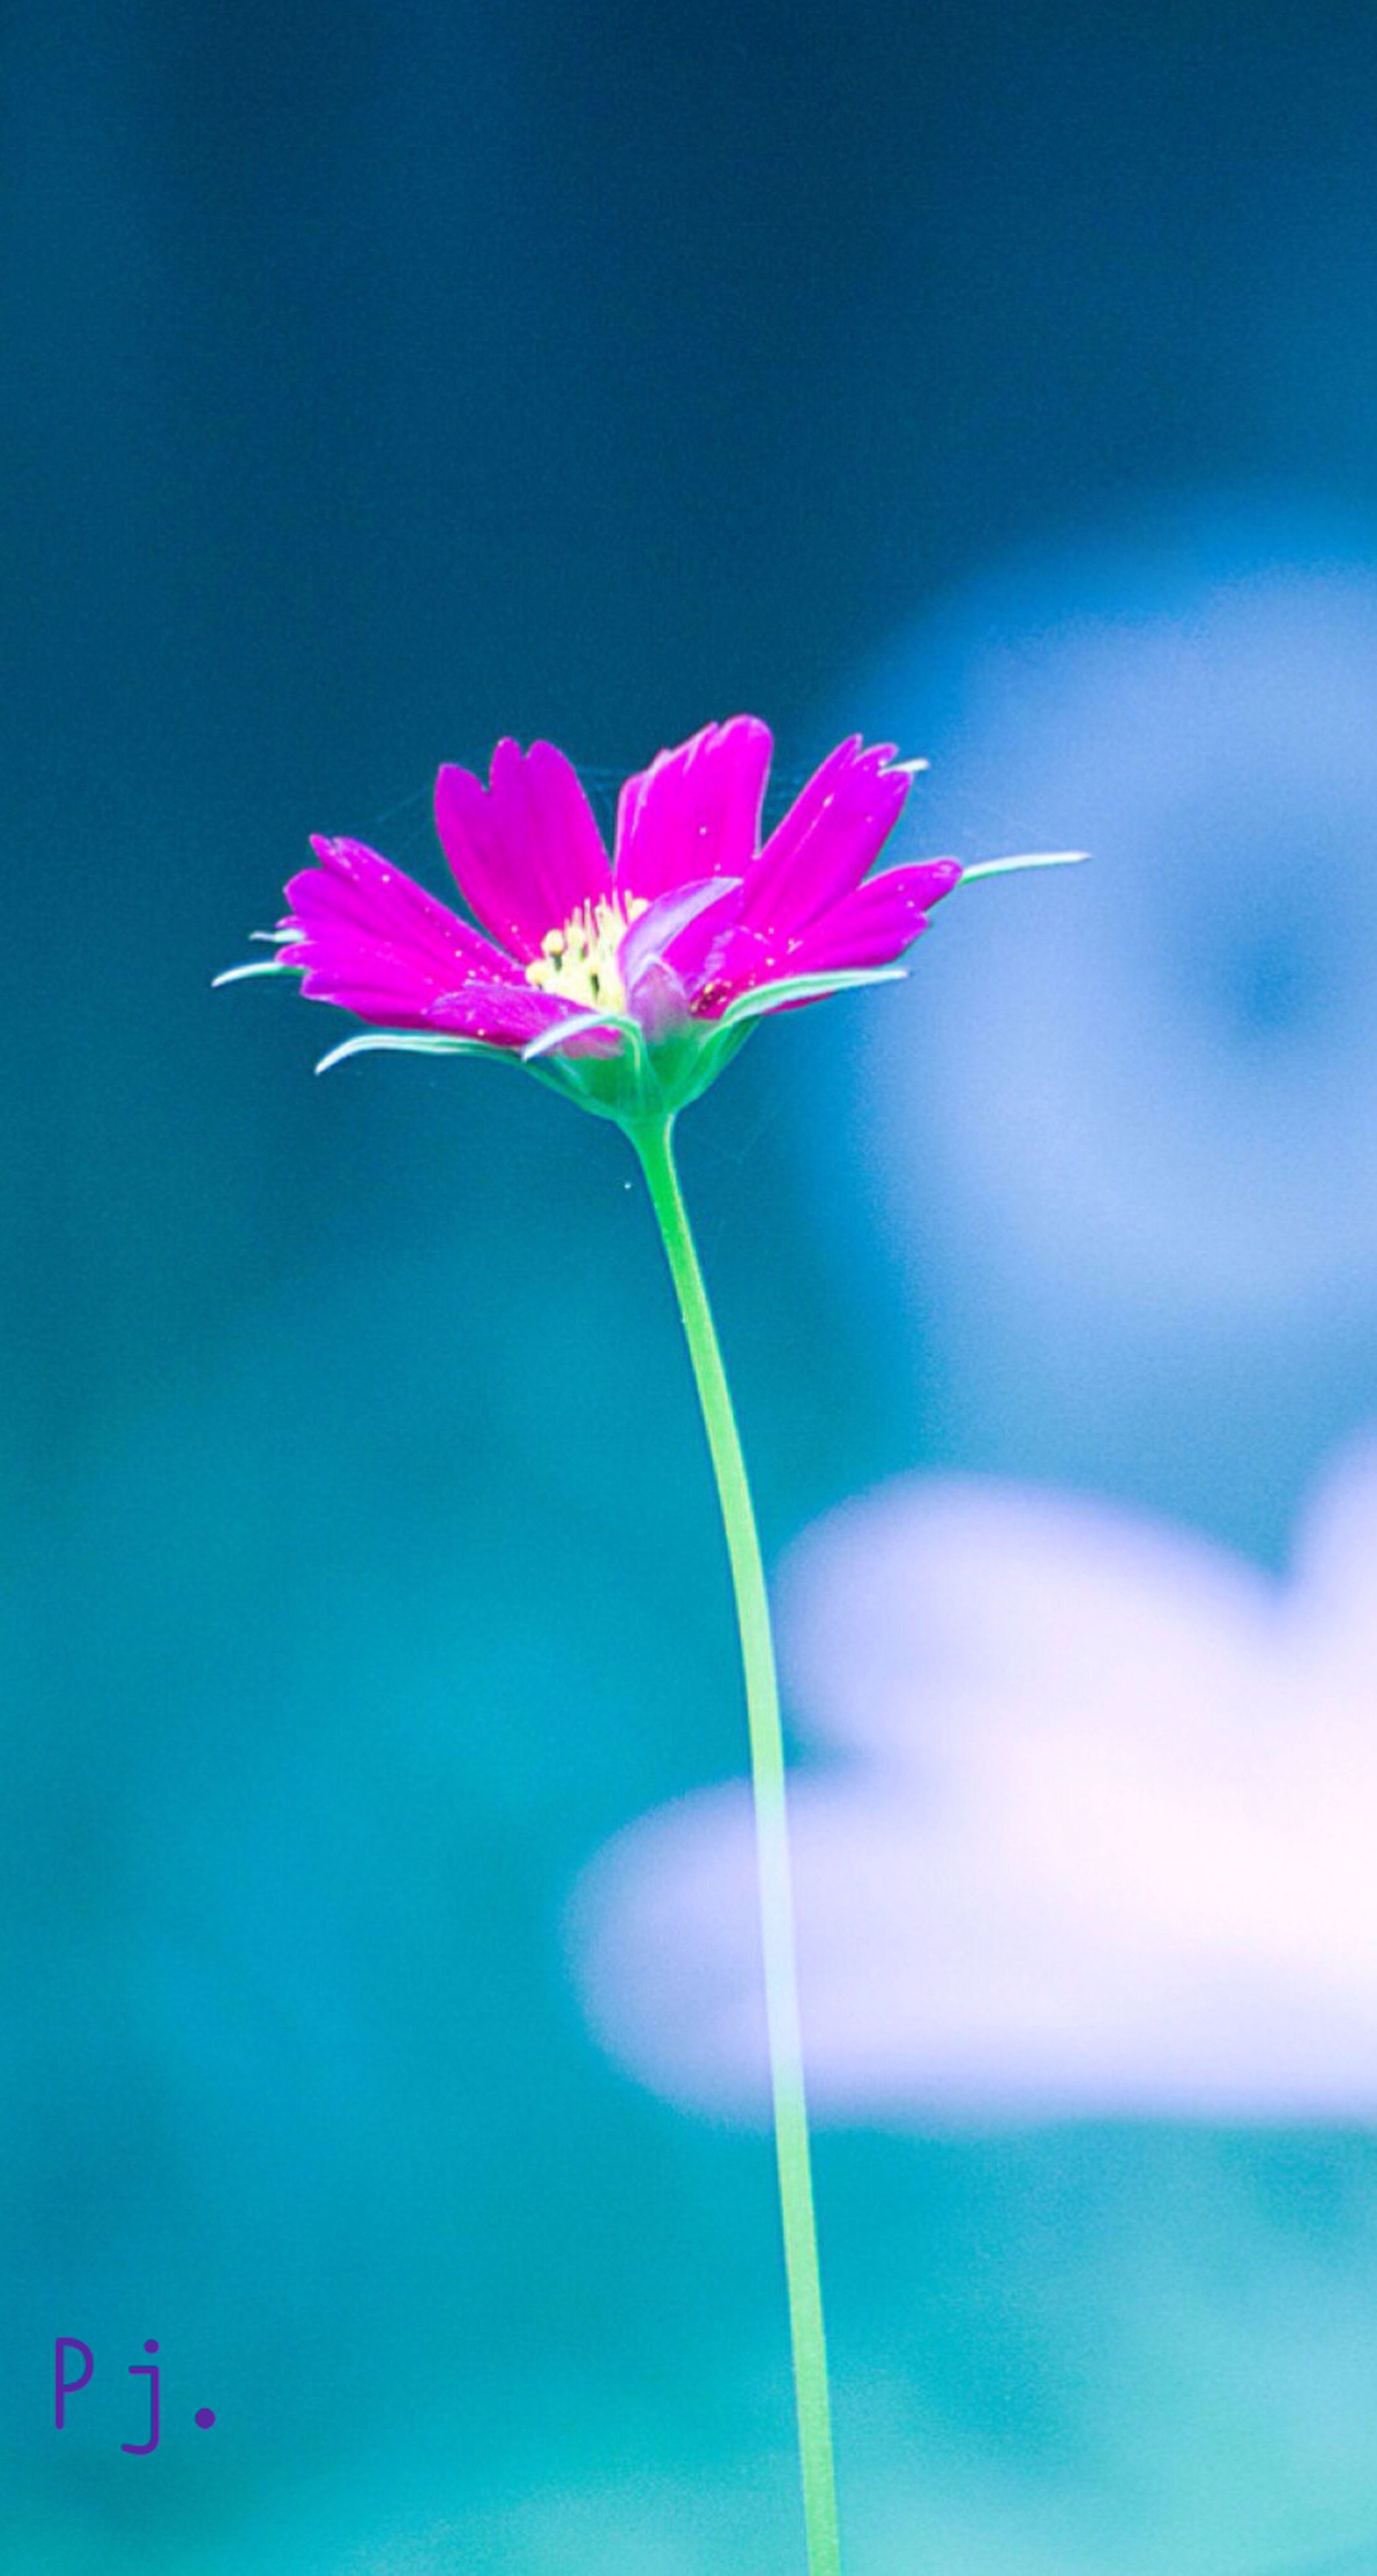 flower, freshness, fragility, petal, stem, flower head, beauty in nature, growth, nature, close-up, focus on foreground, bud, blooming, blossom, blue, pink color, plant, in bloom, selective focus, purple